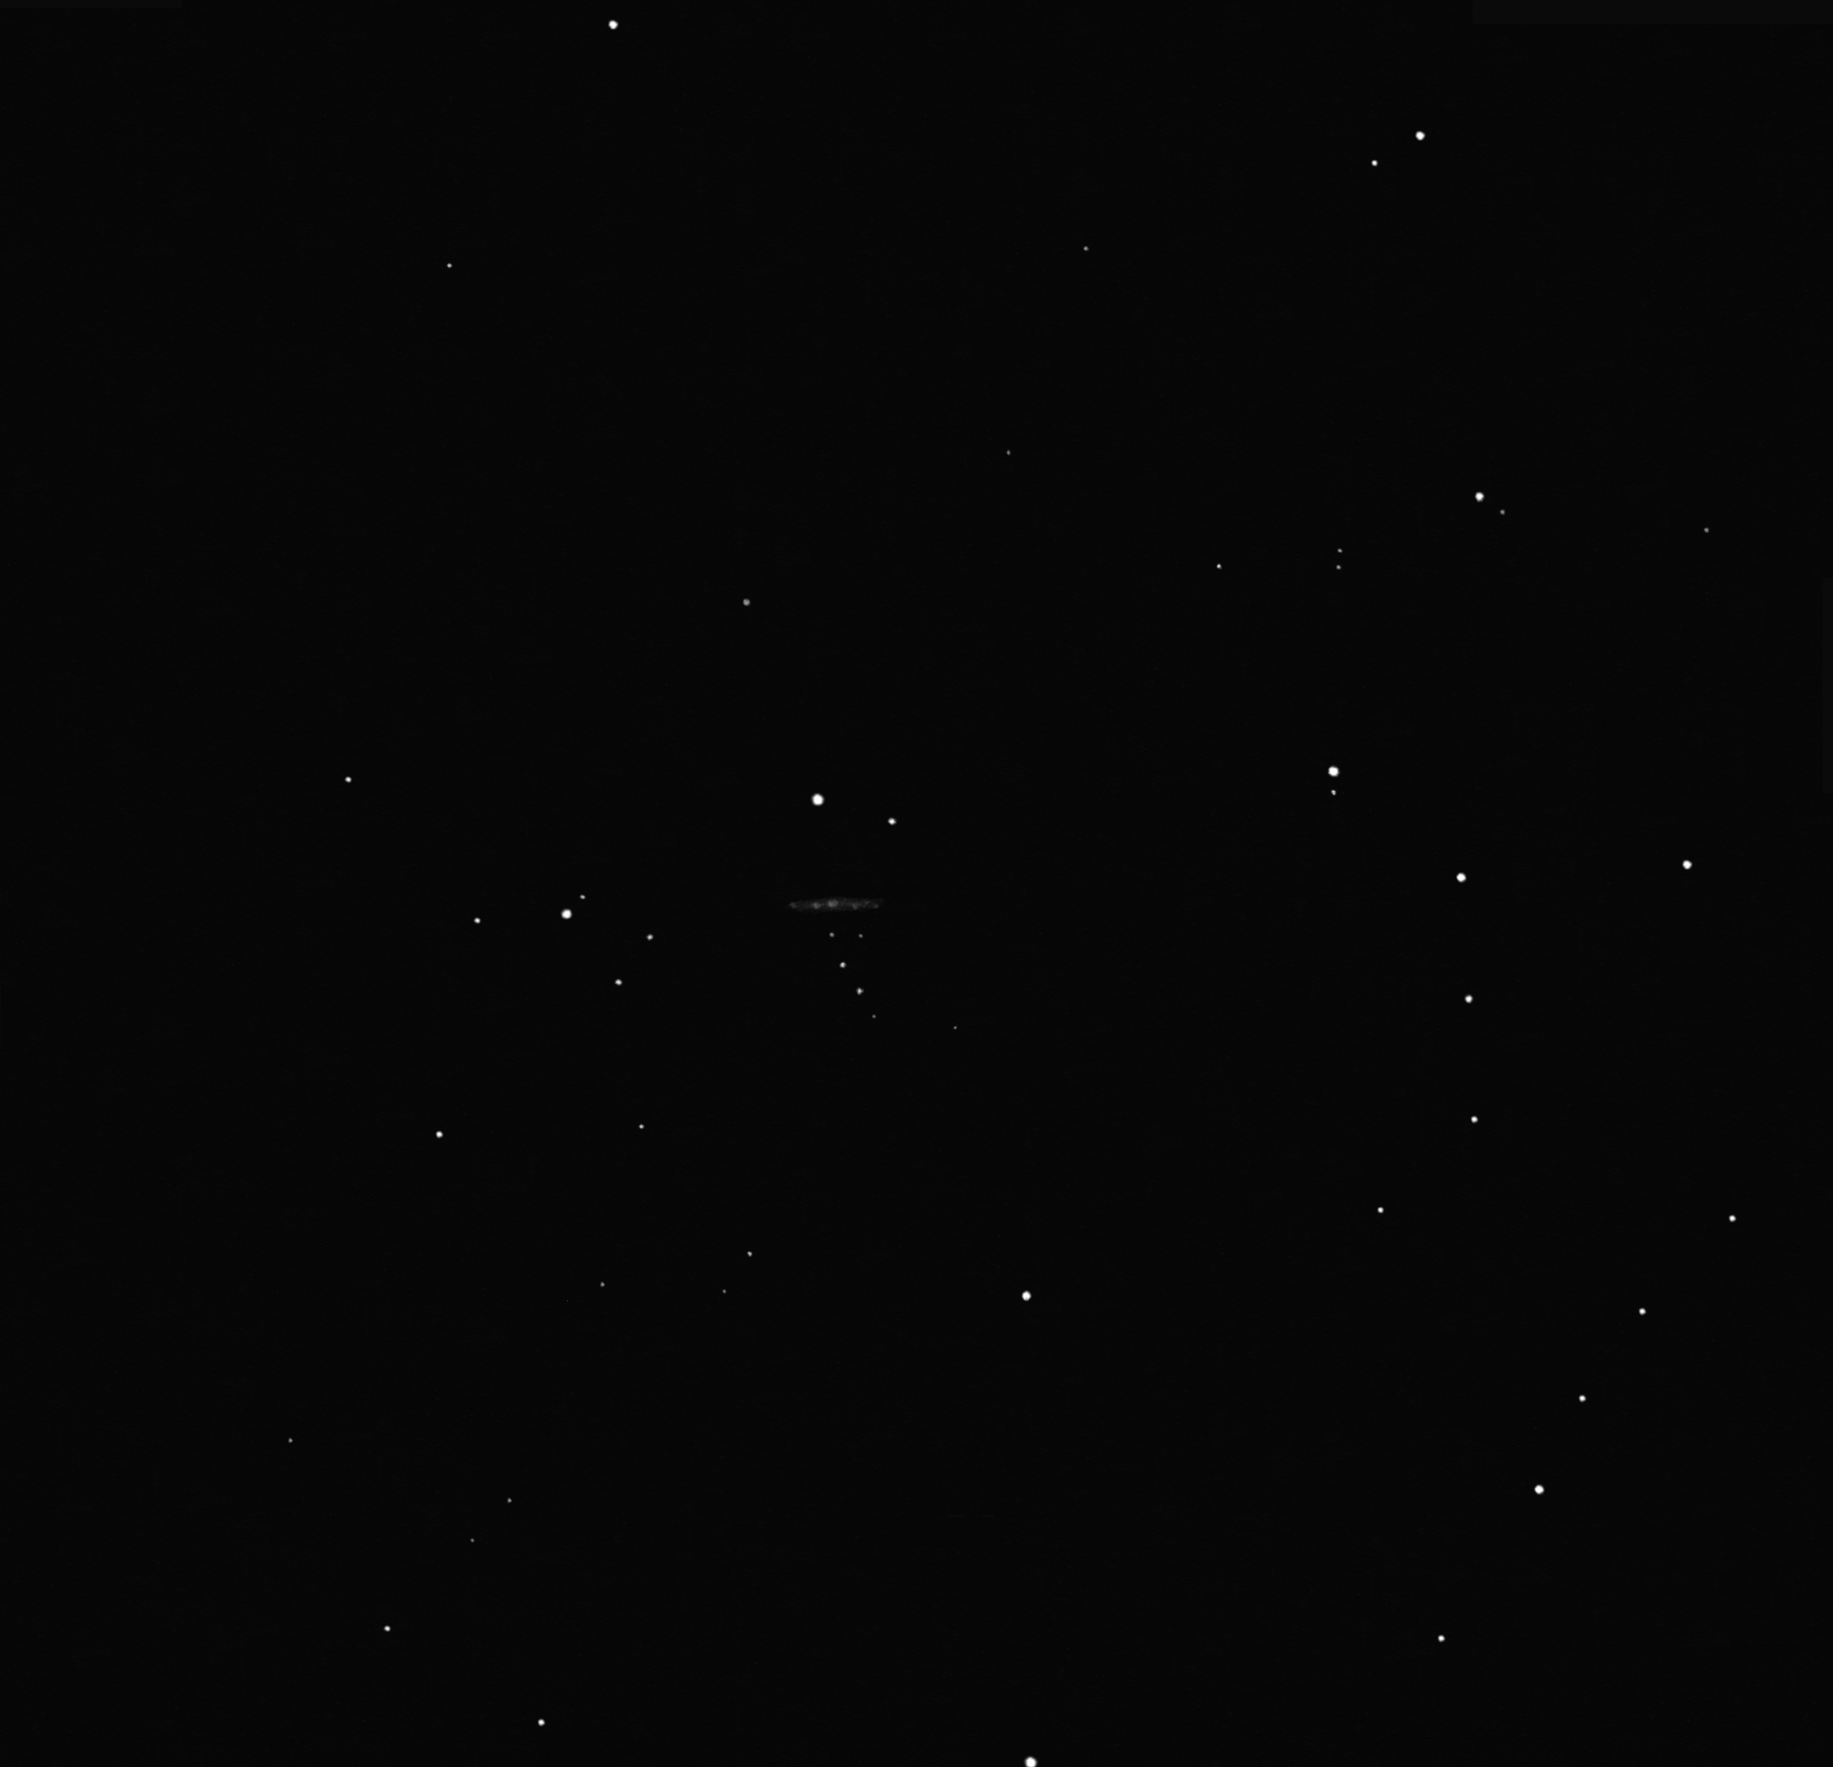 ngc 2670 open cluster